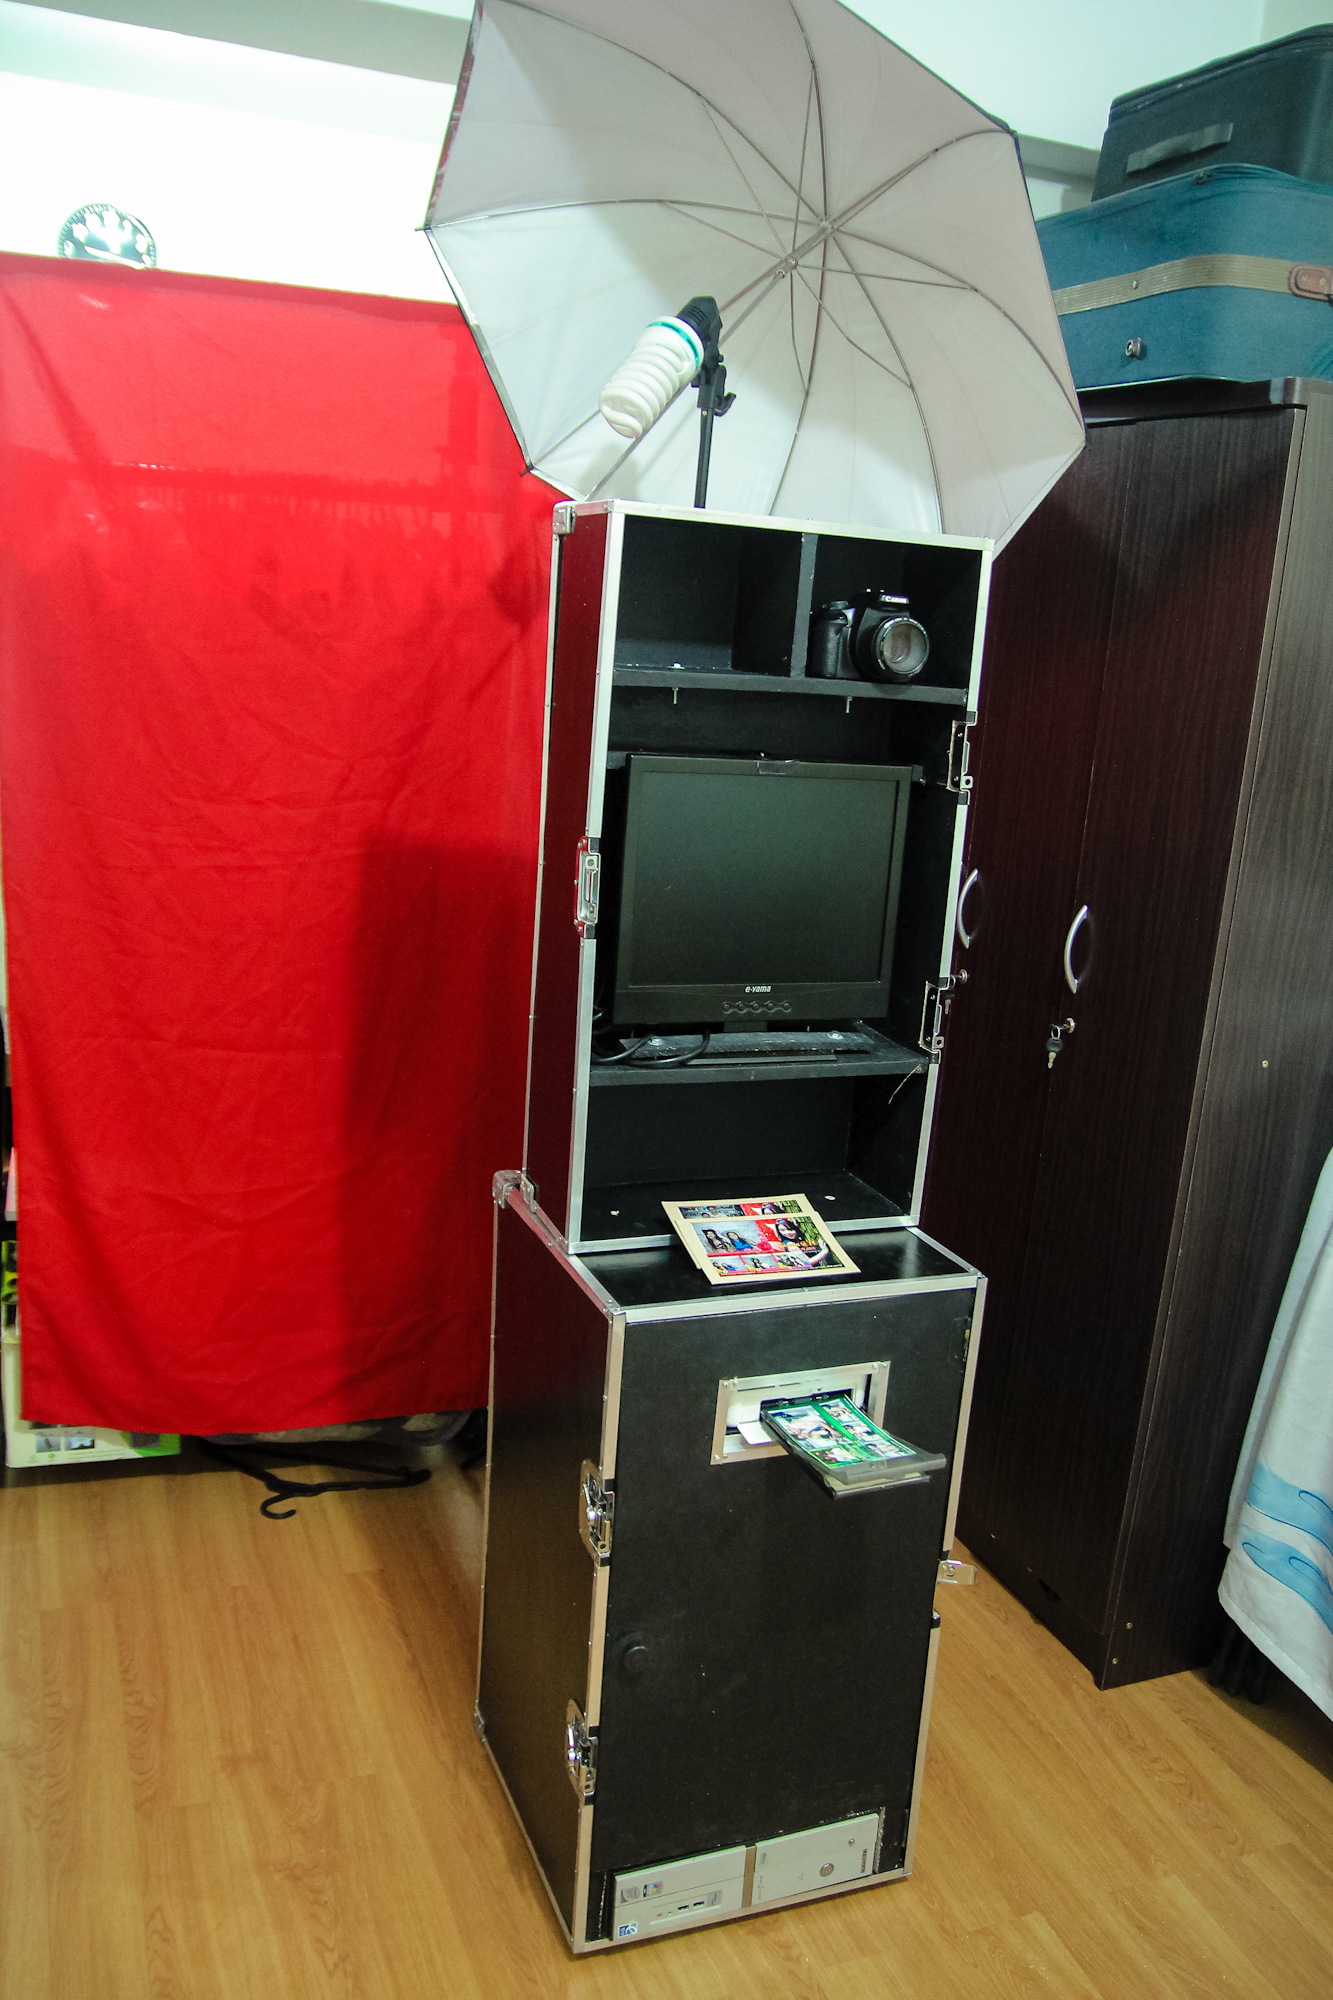 For as low as P56,000 you can have your own Photobooth Business